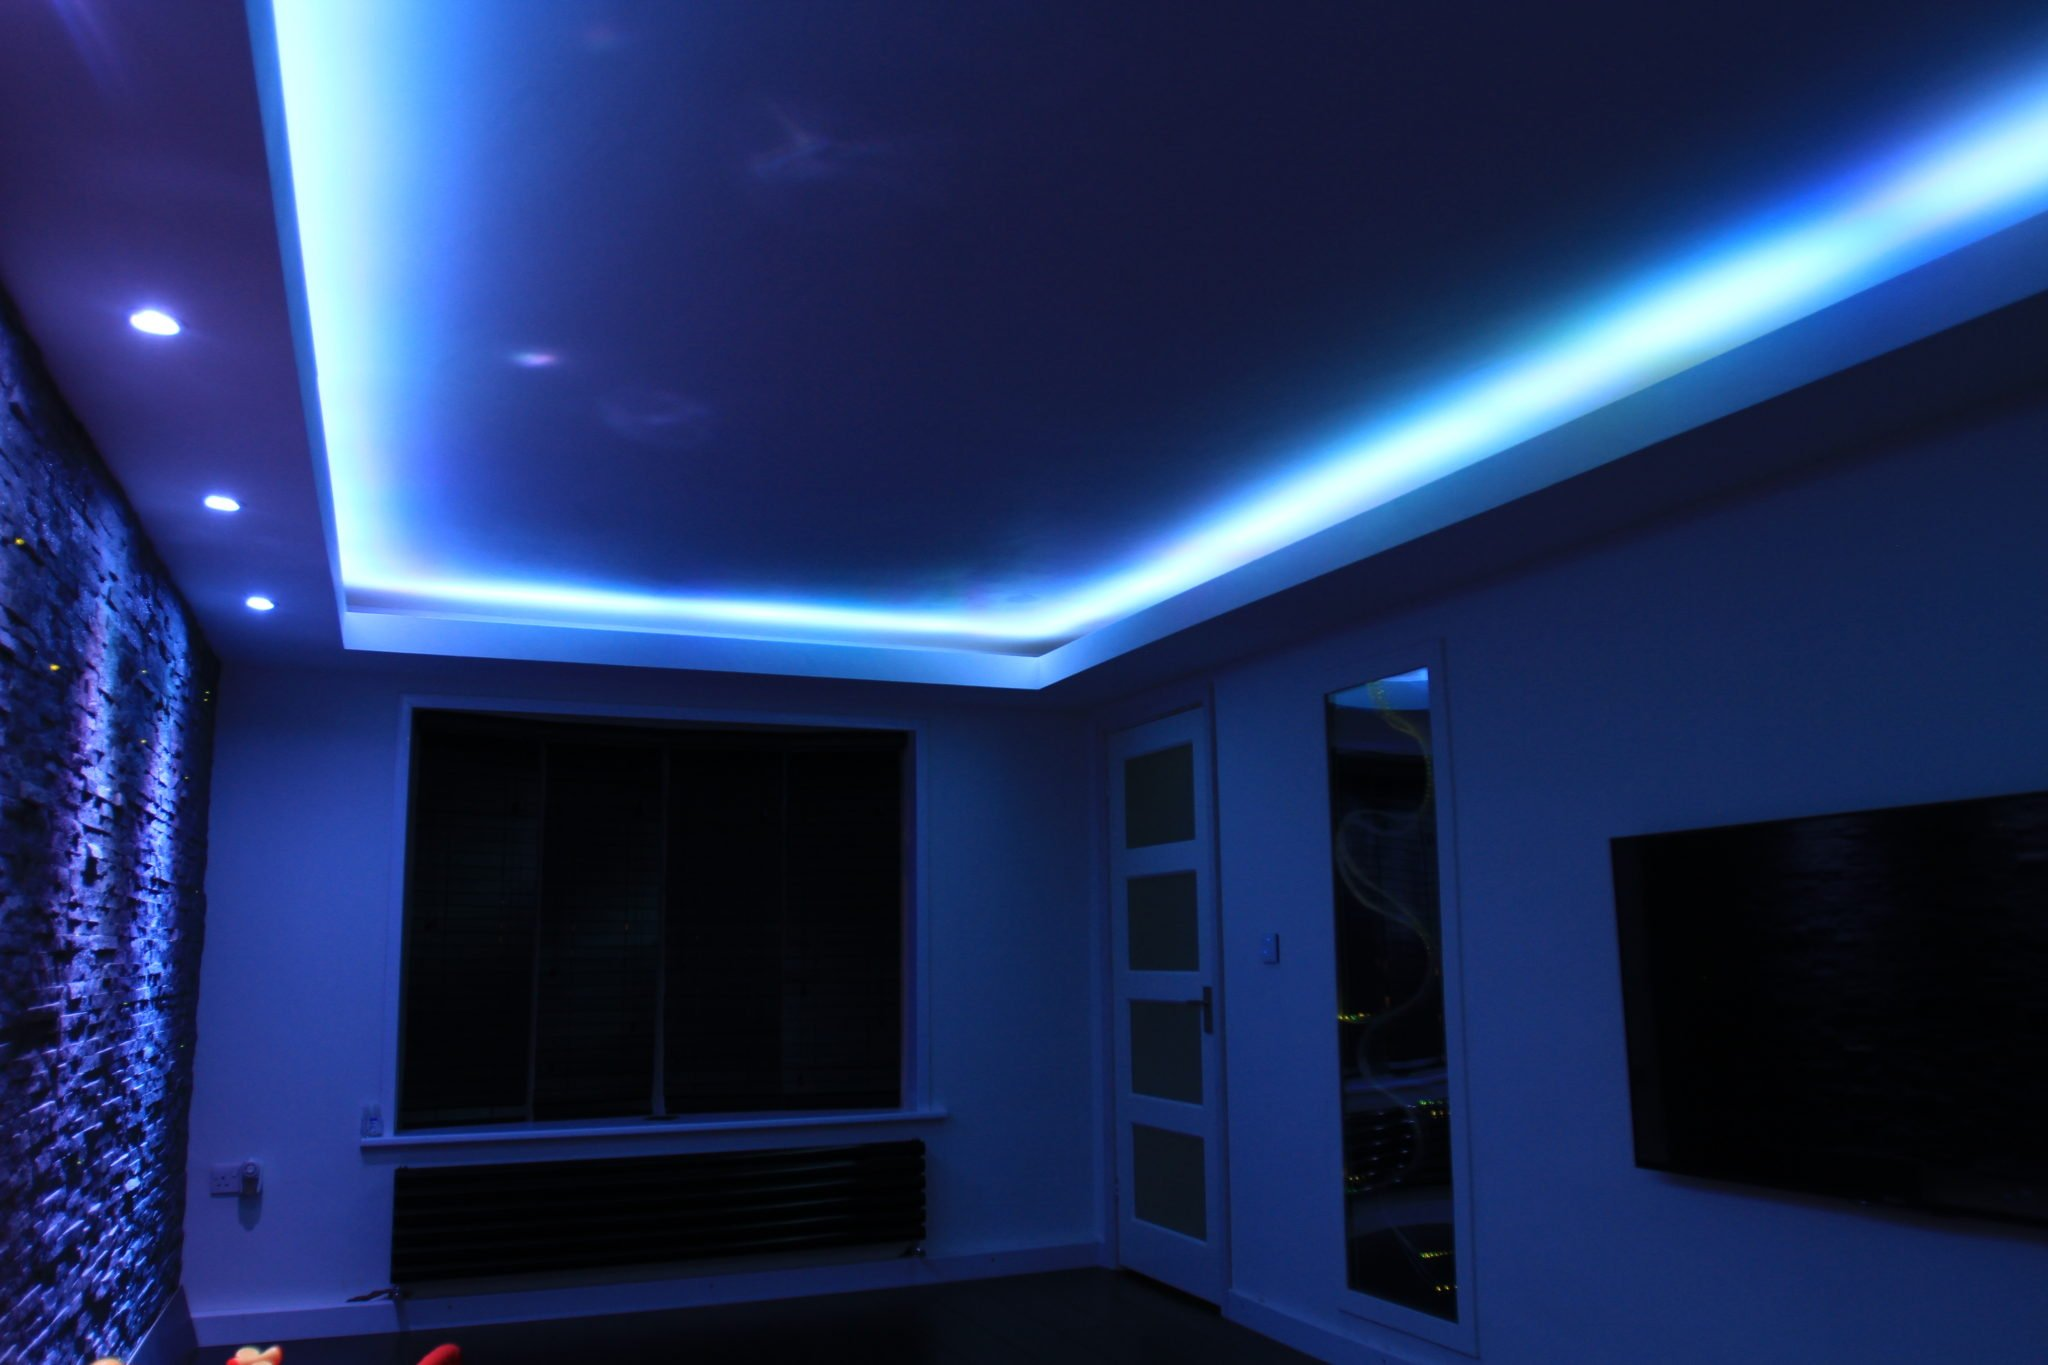 bespoke led panels led lights custom fibre optics. Black Bedroom Furniture Sets. Home Design Ideas